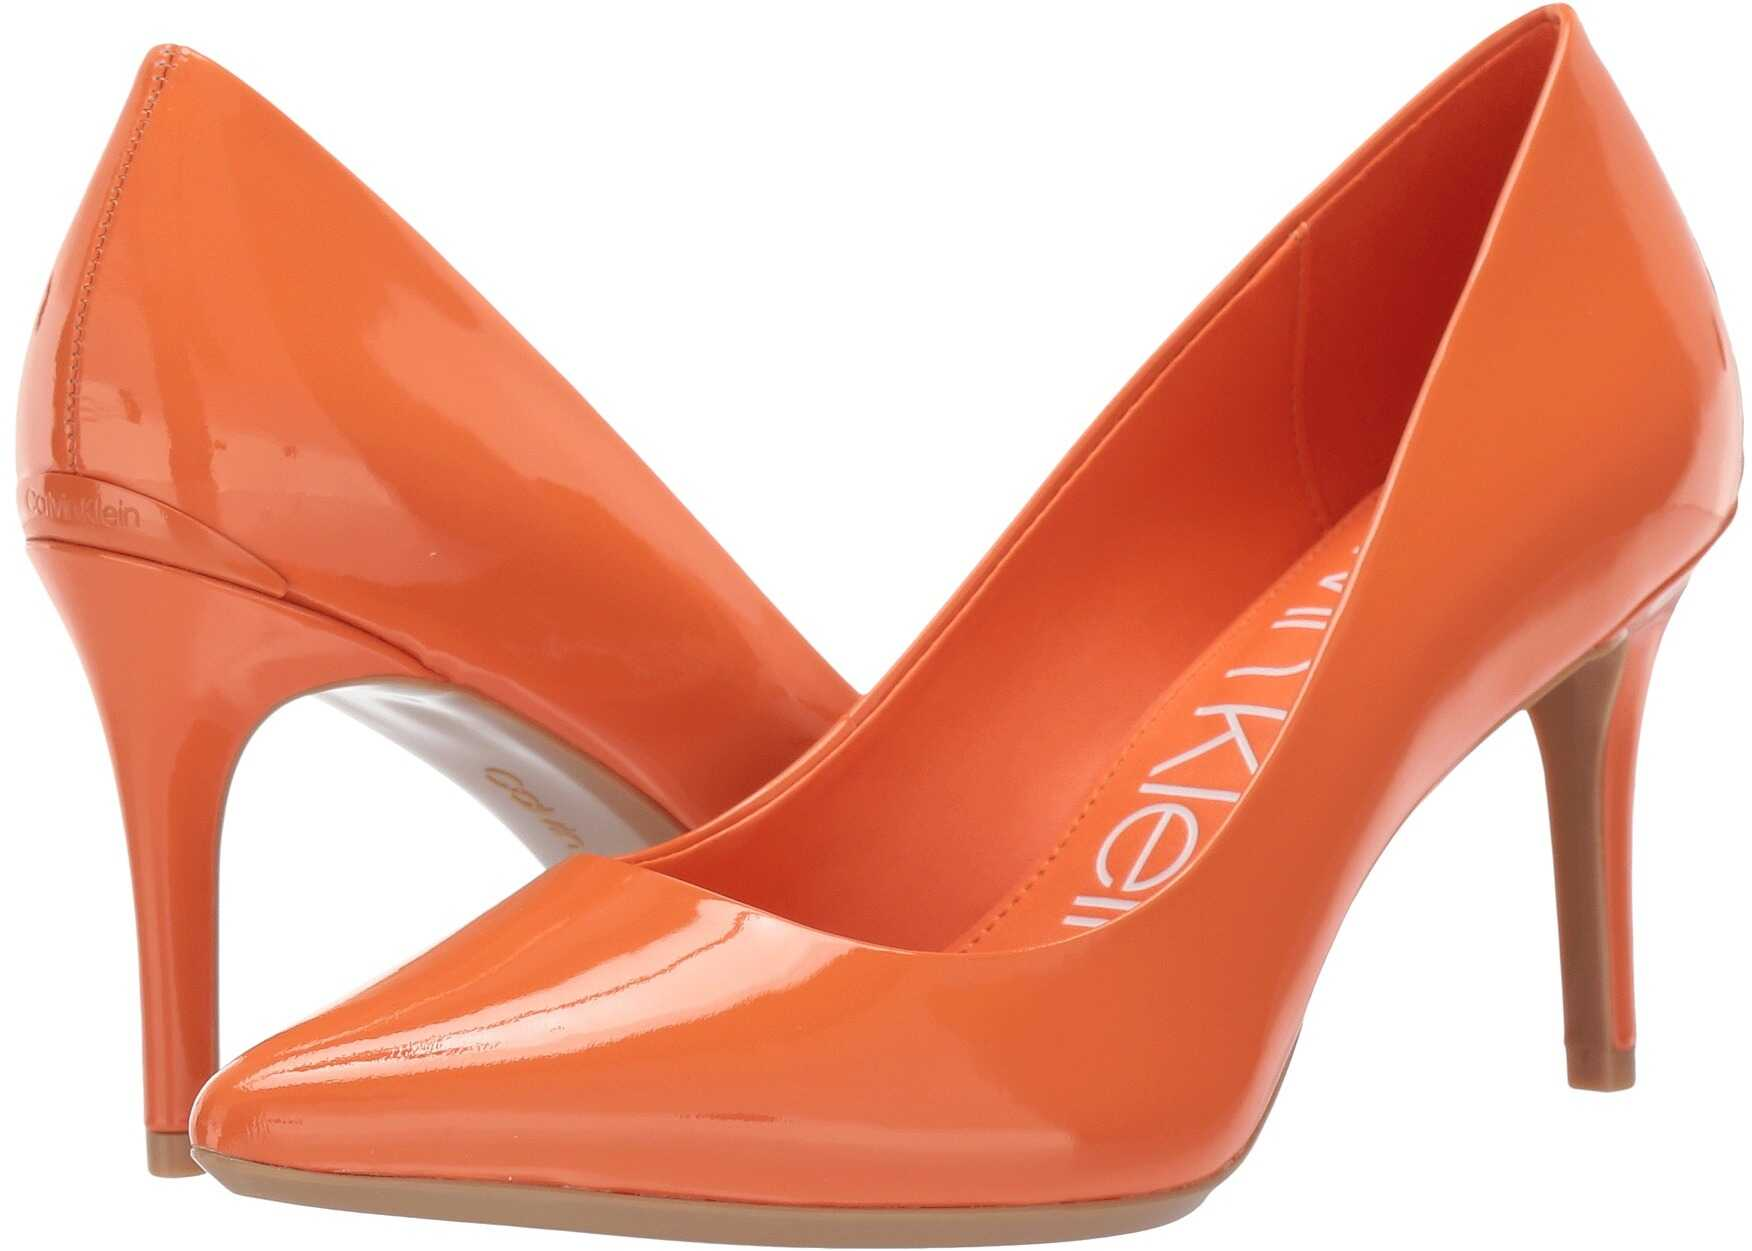 Calvin Klein Gayle Pump Orange Popsicle Patent